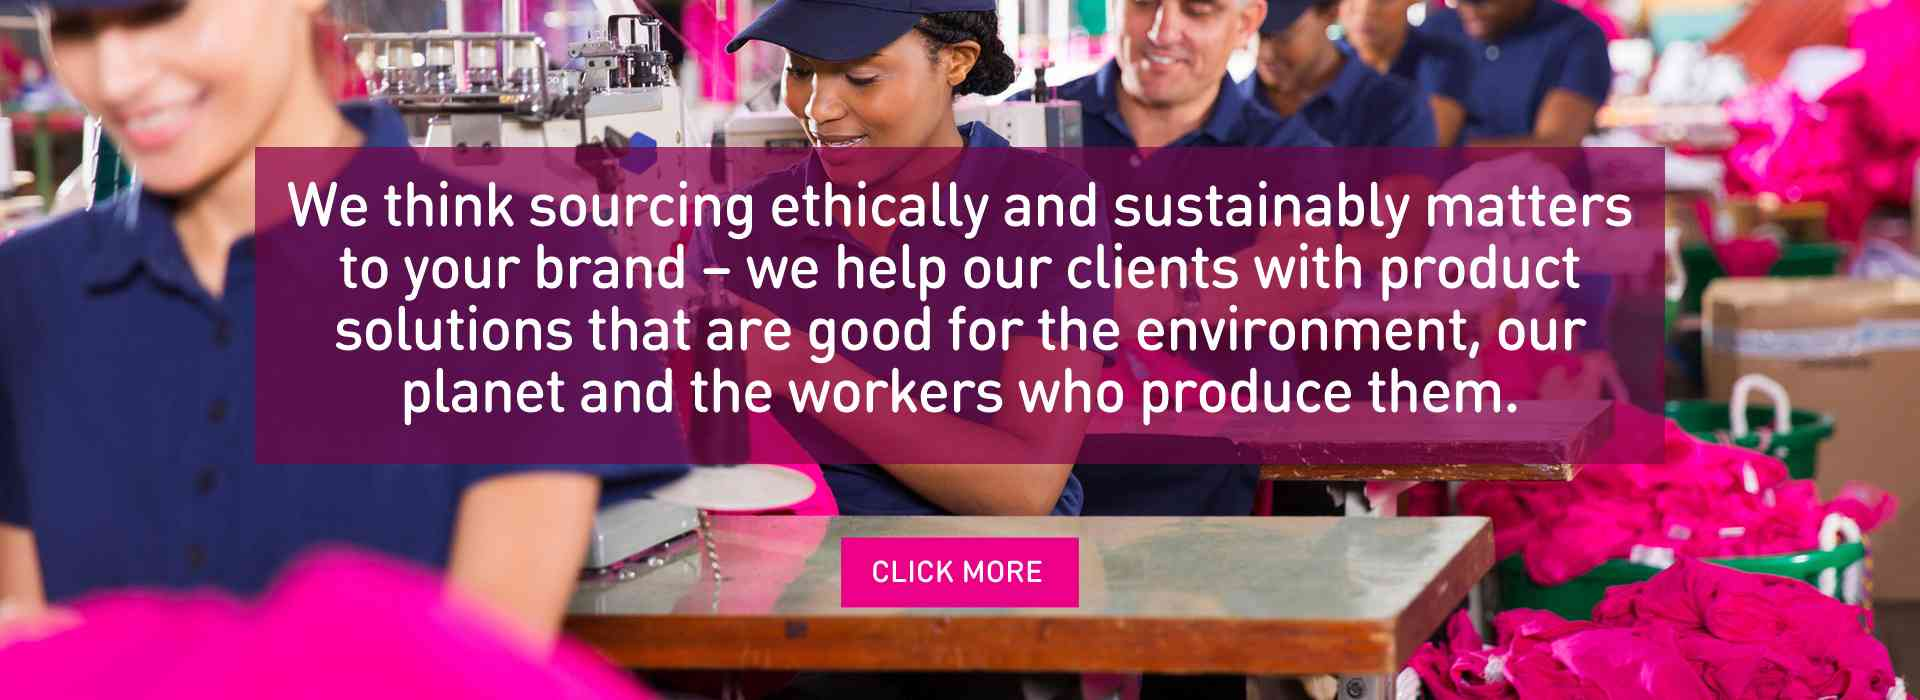 Sourcing ethical and sustainable